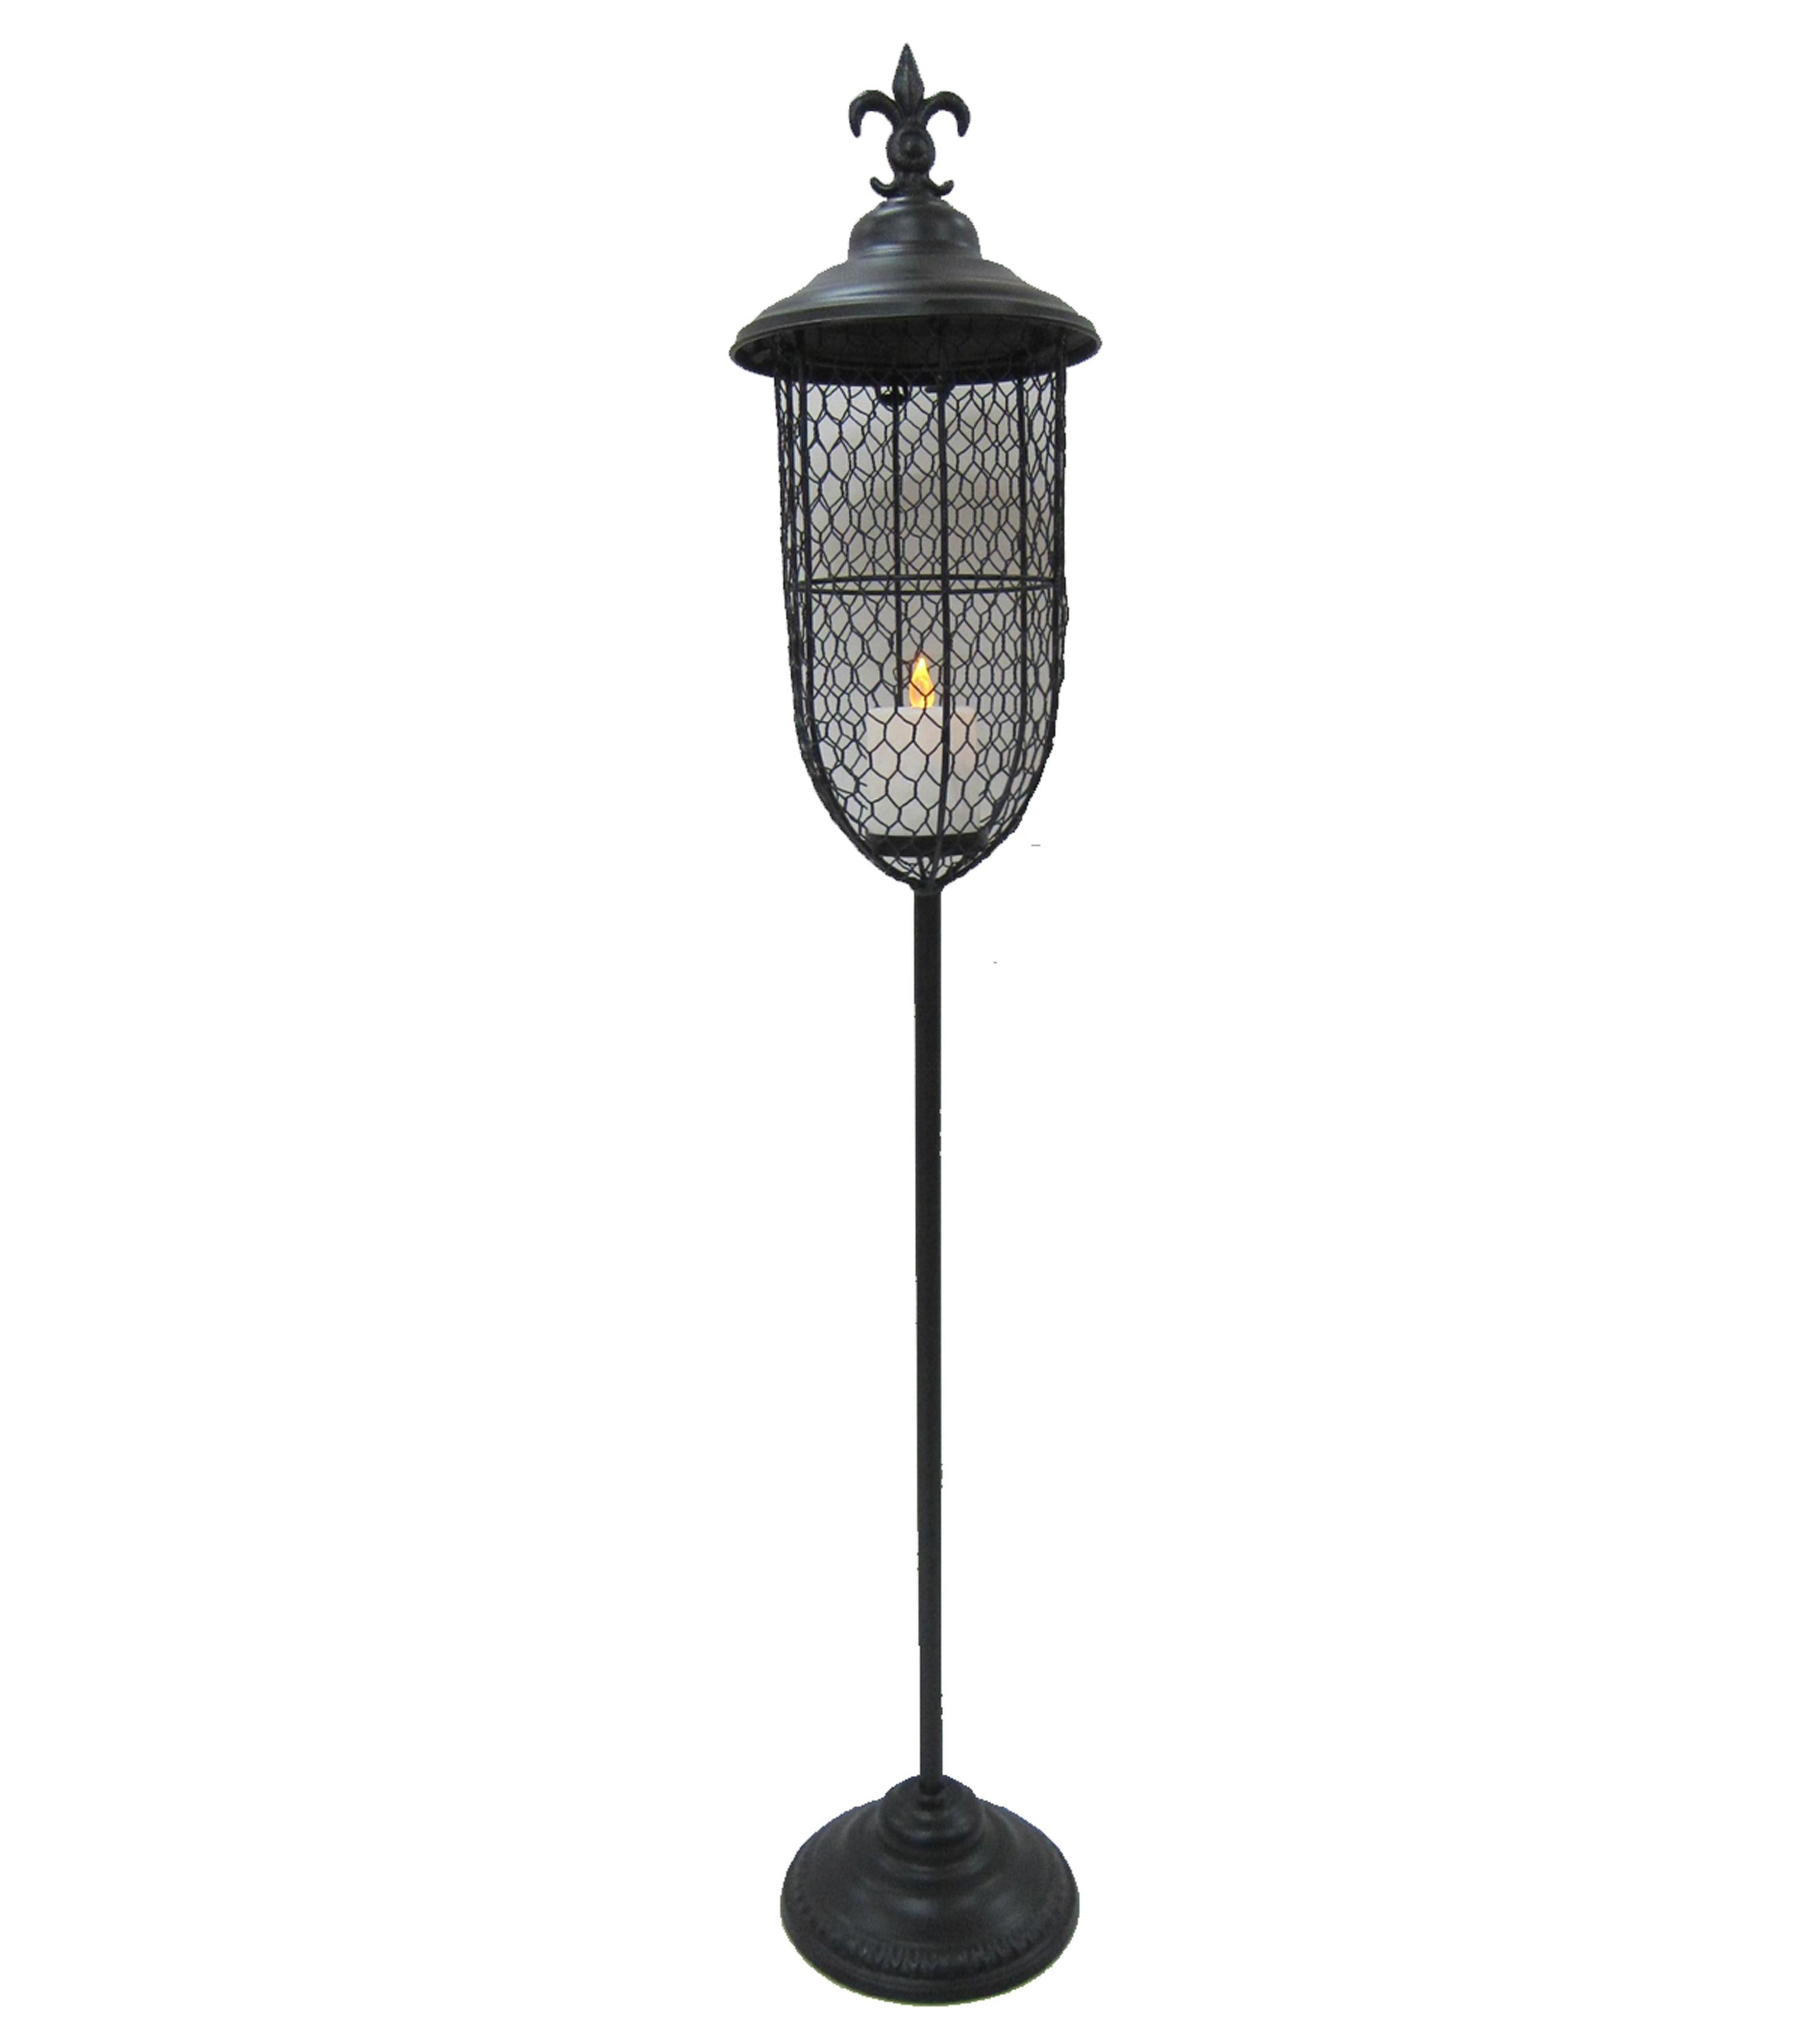 Maker's Halloween Large Metal Lantern with LED Candle